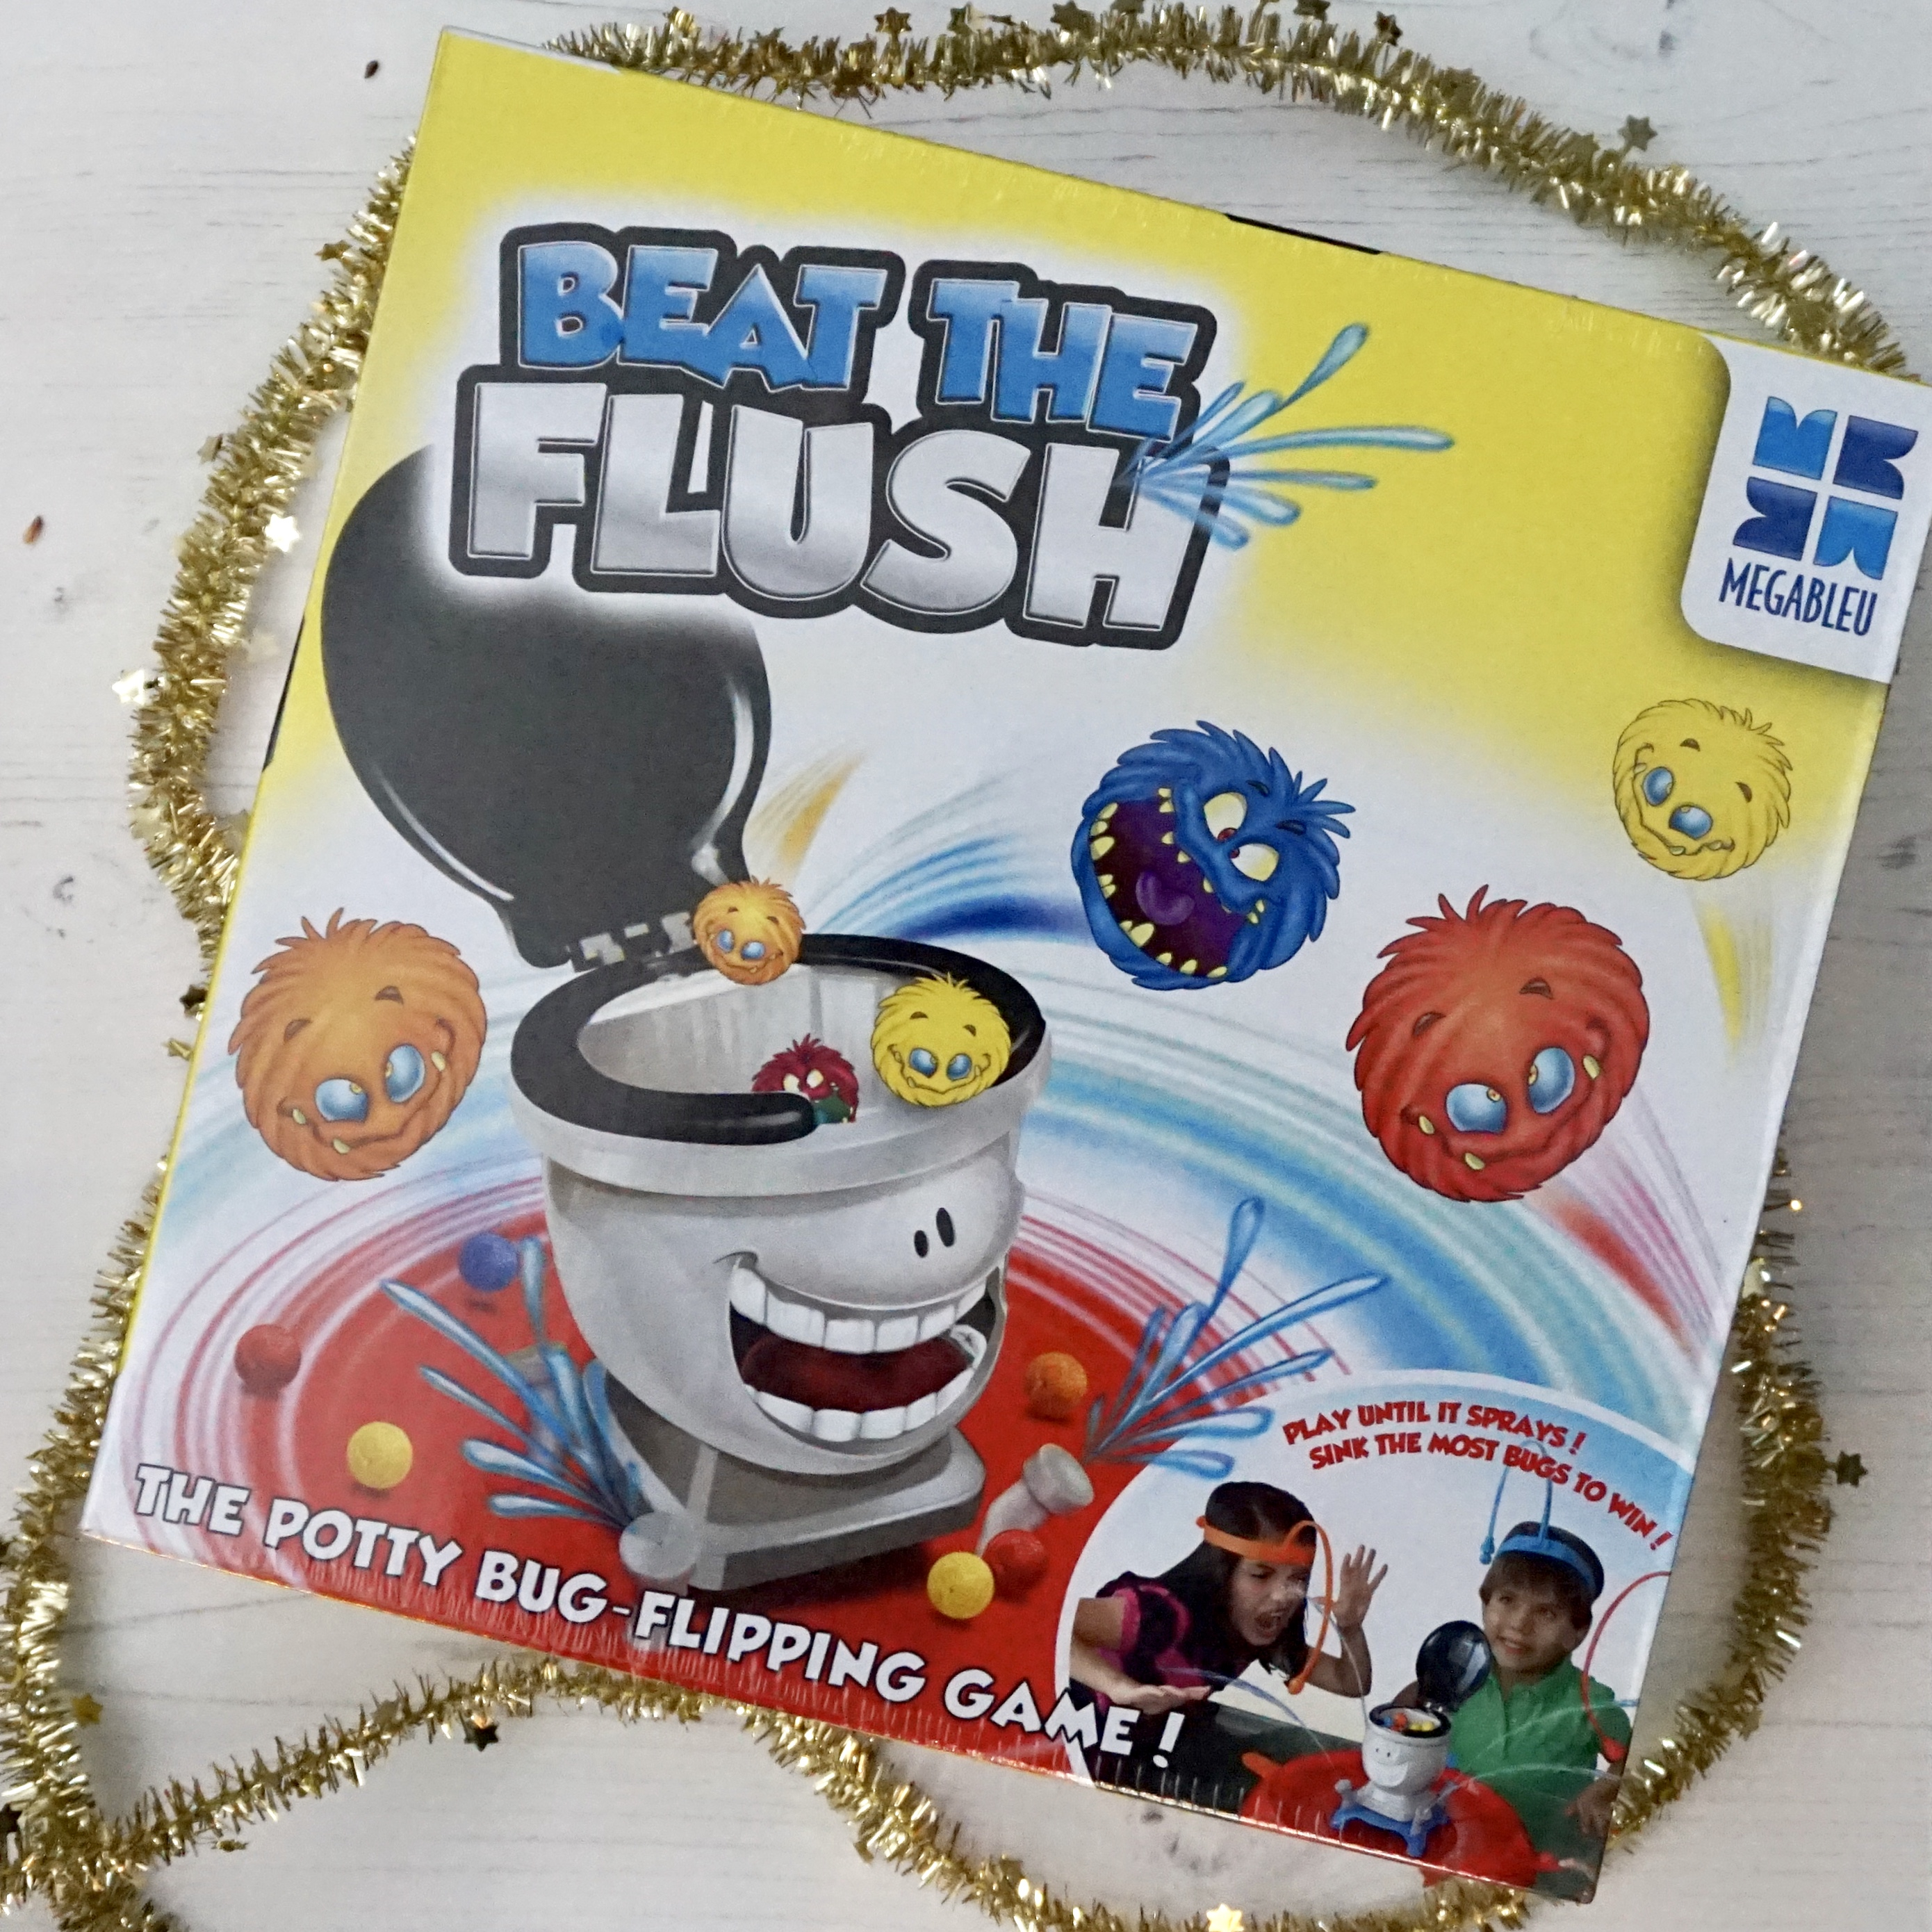 Christmas gifts beat the flush